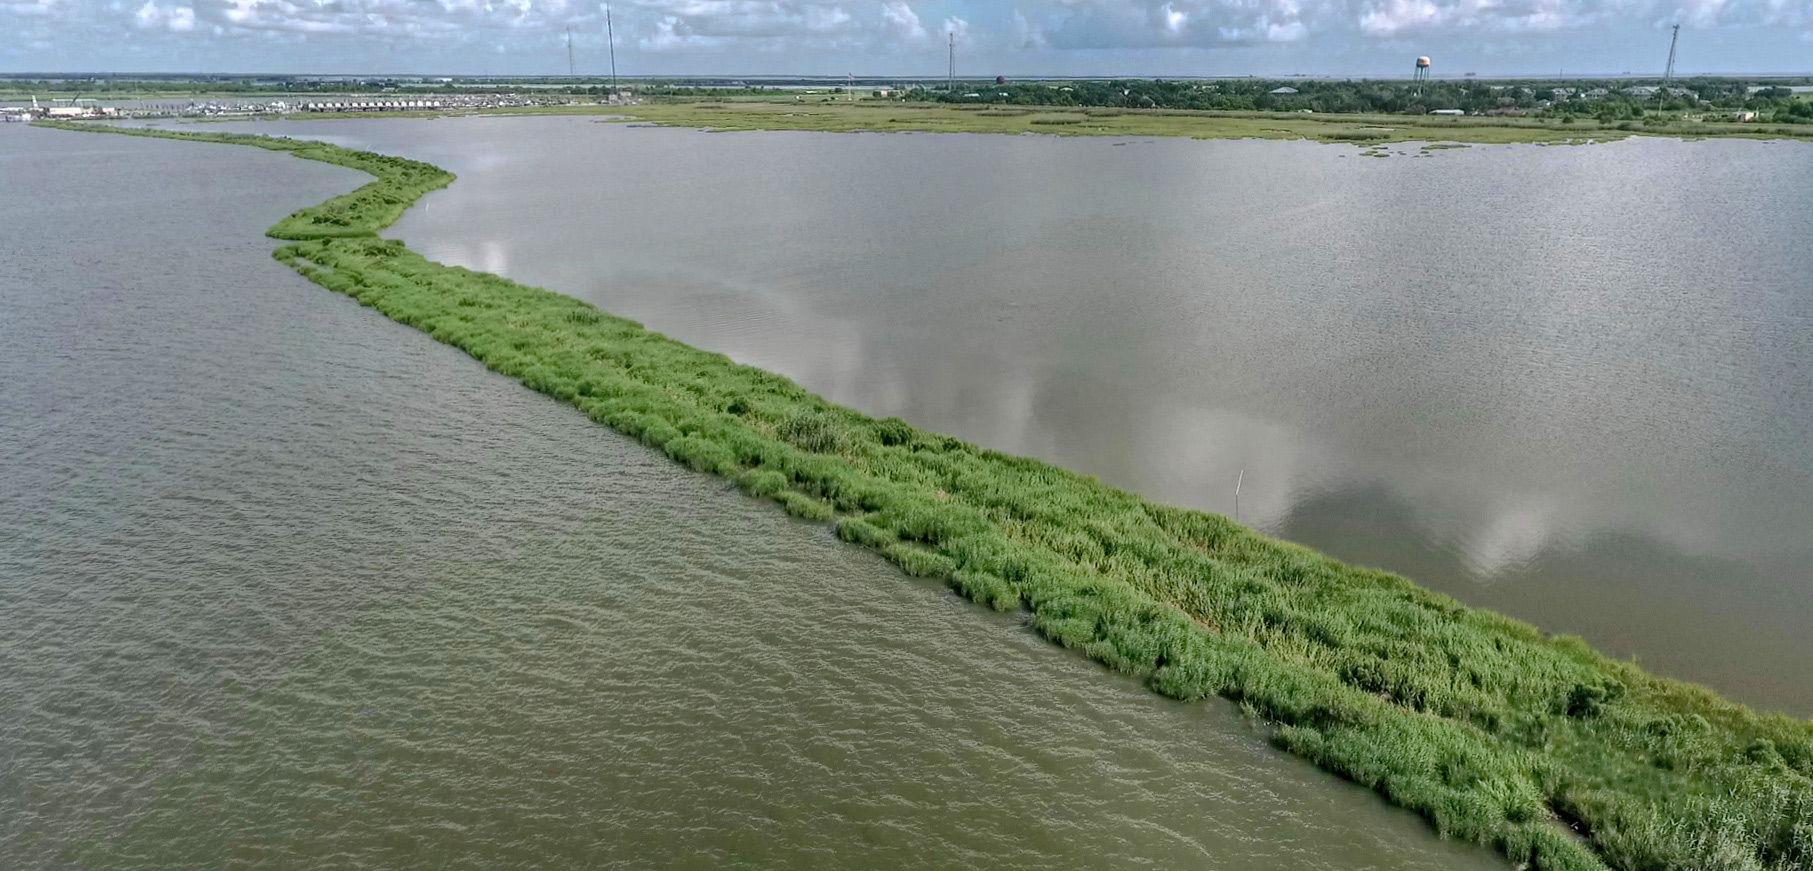 Along the coastline of Louisiana, artificial islands provide habitat for fish and wildlife and help lessen the impacts of wind and waves